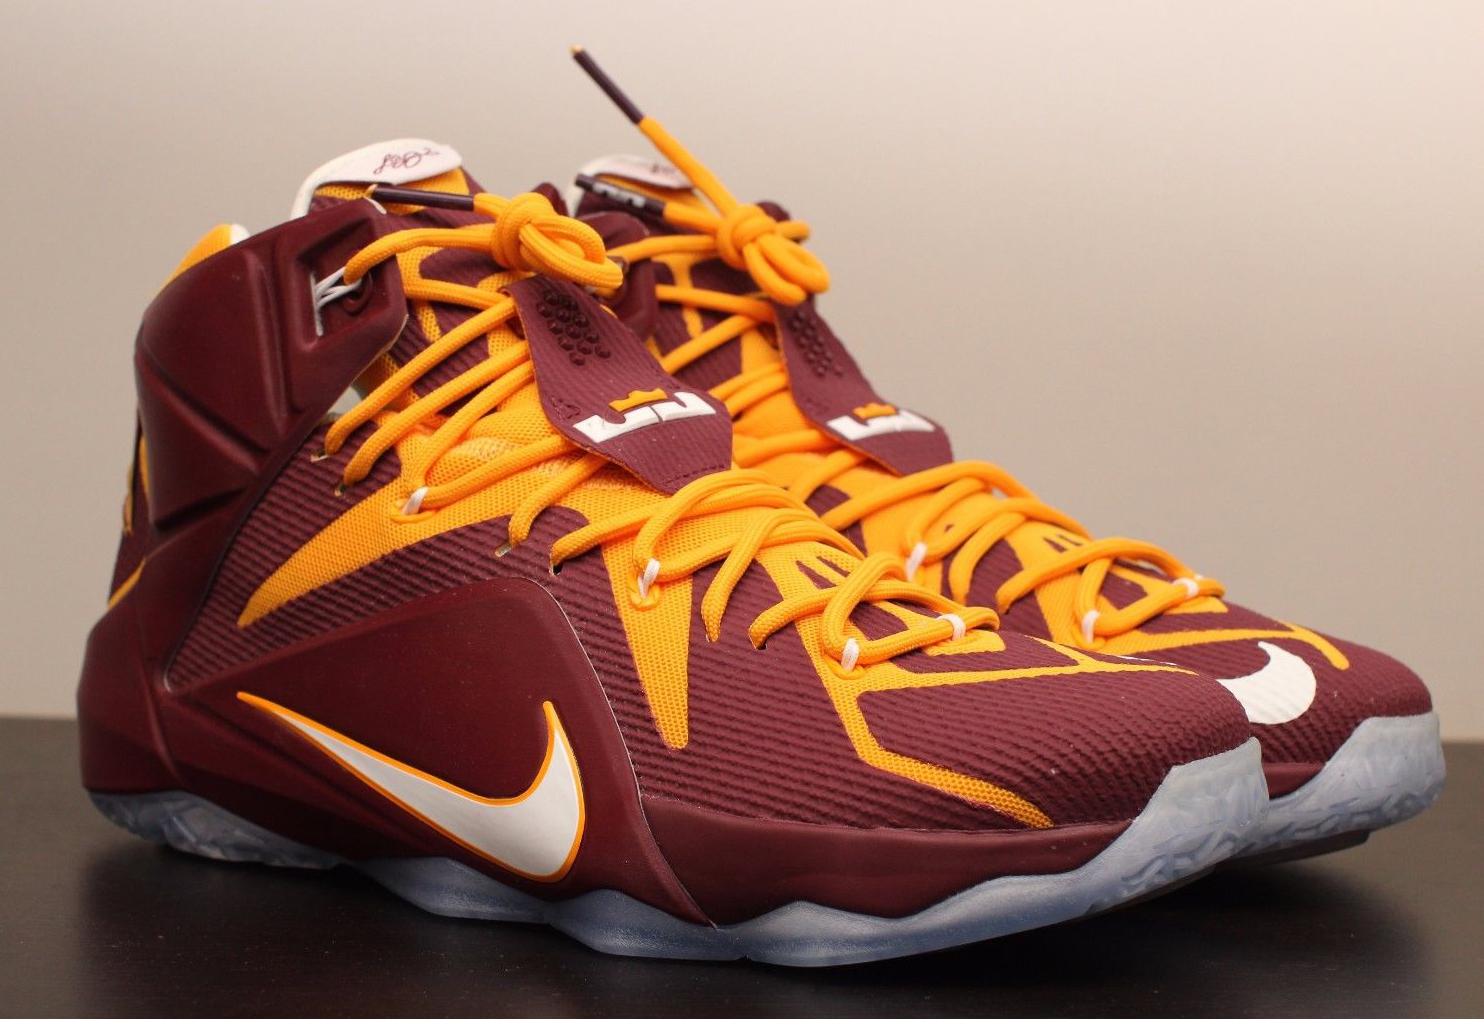 8dbebff764a5 LeBron Isn t the Only One With Nike LeBron Exclusives